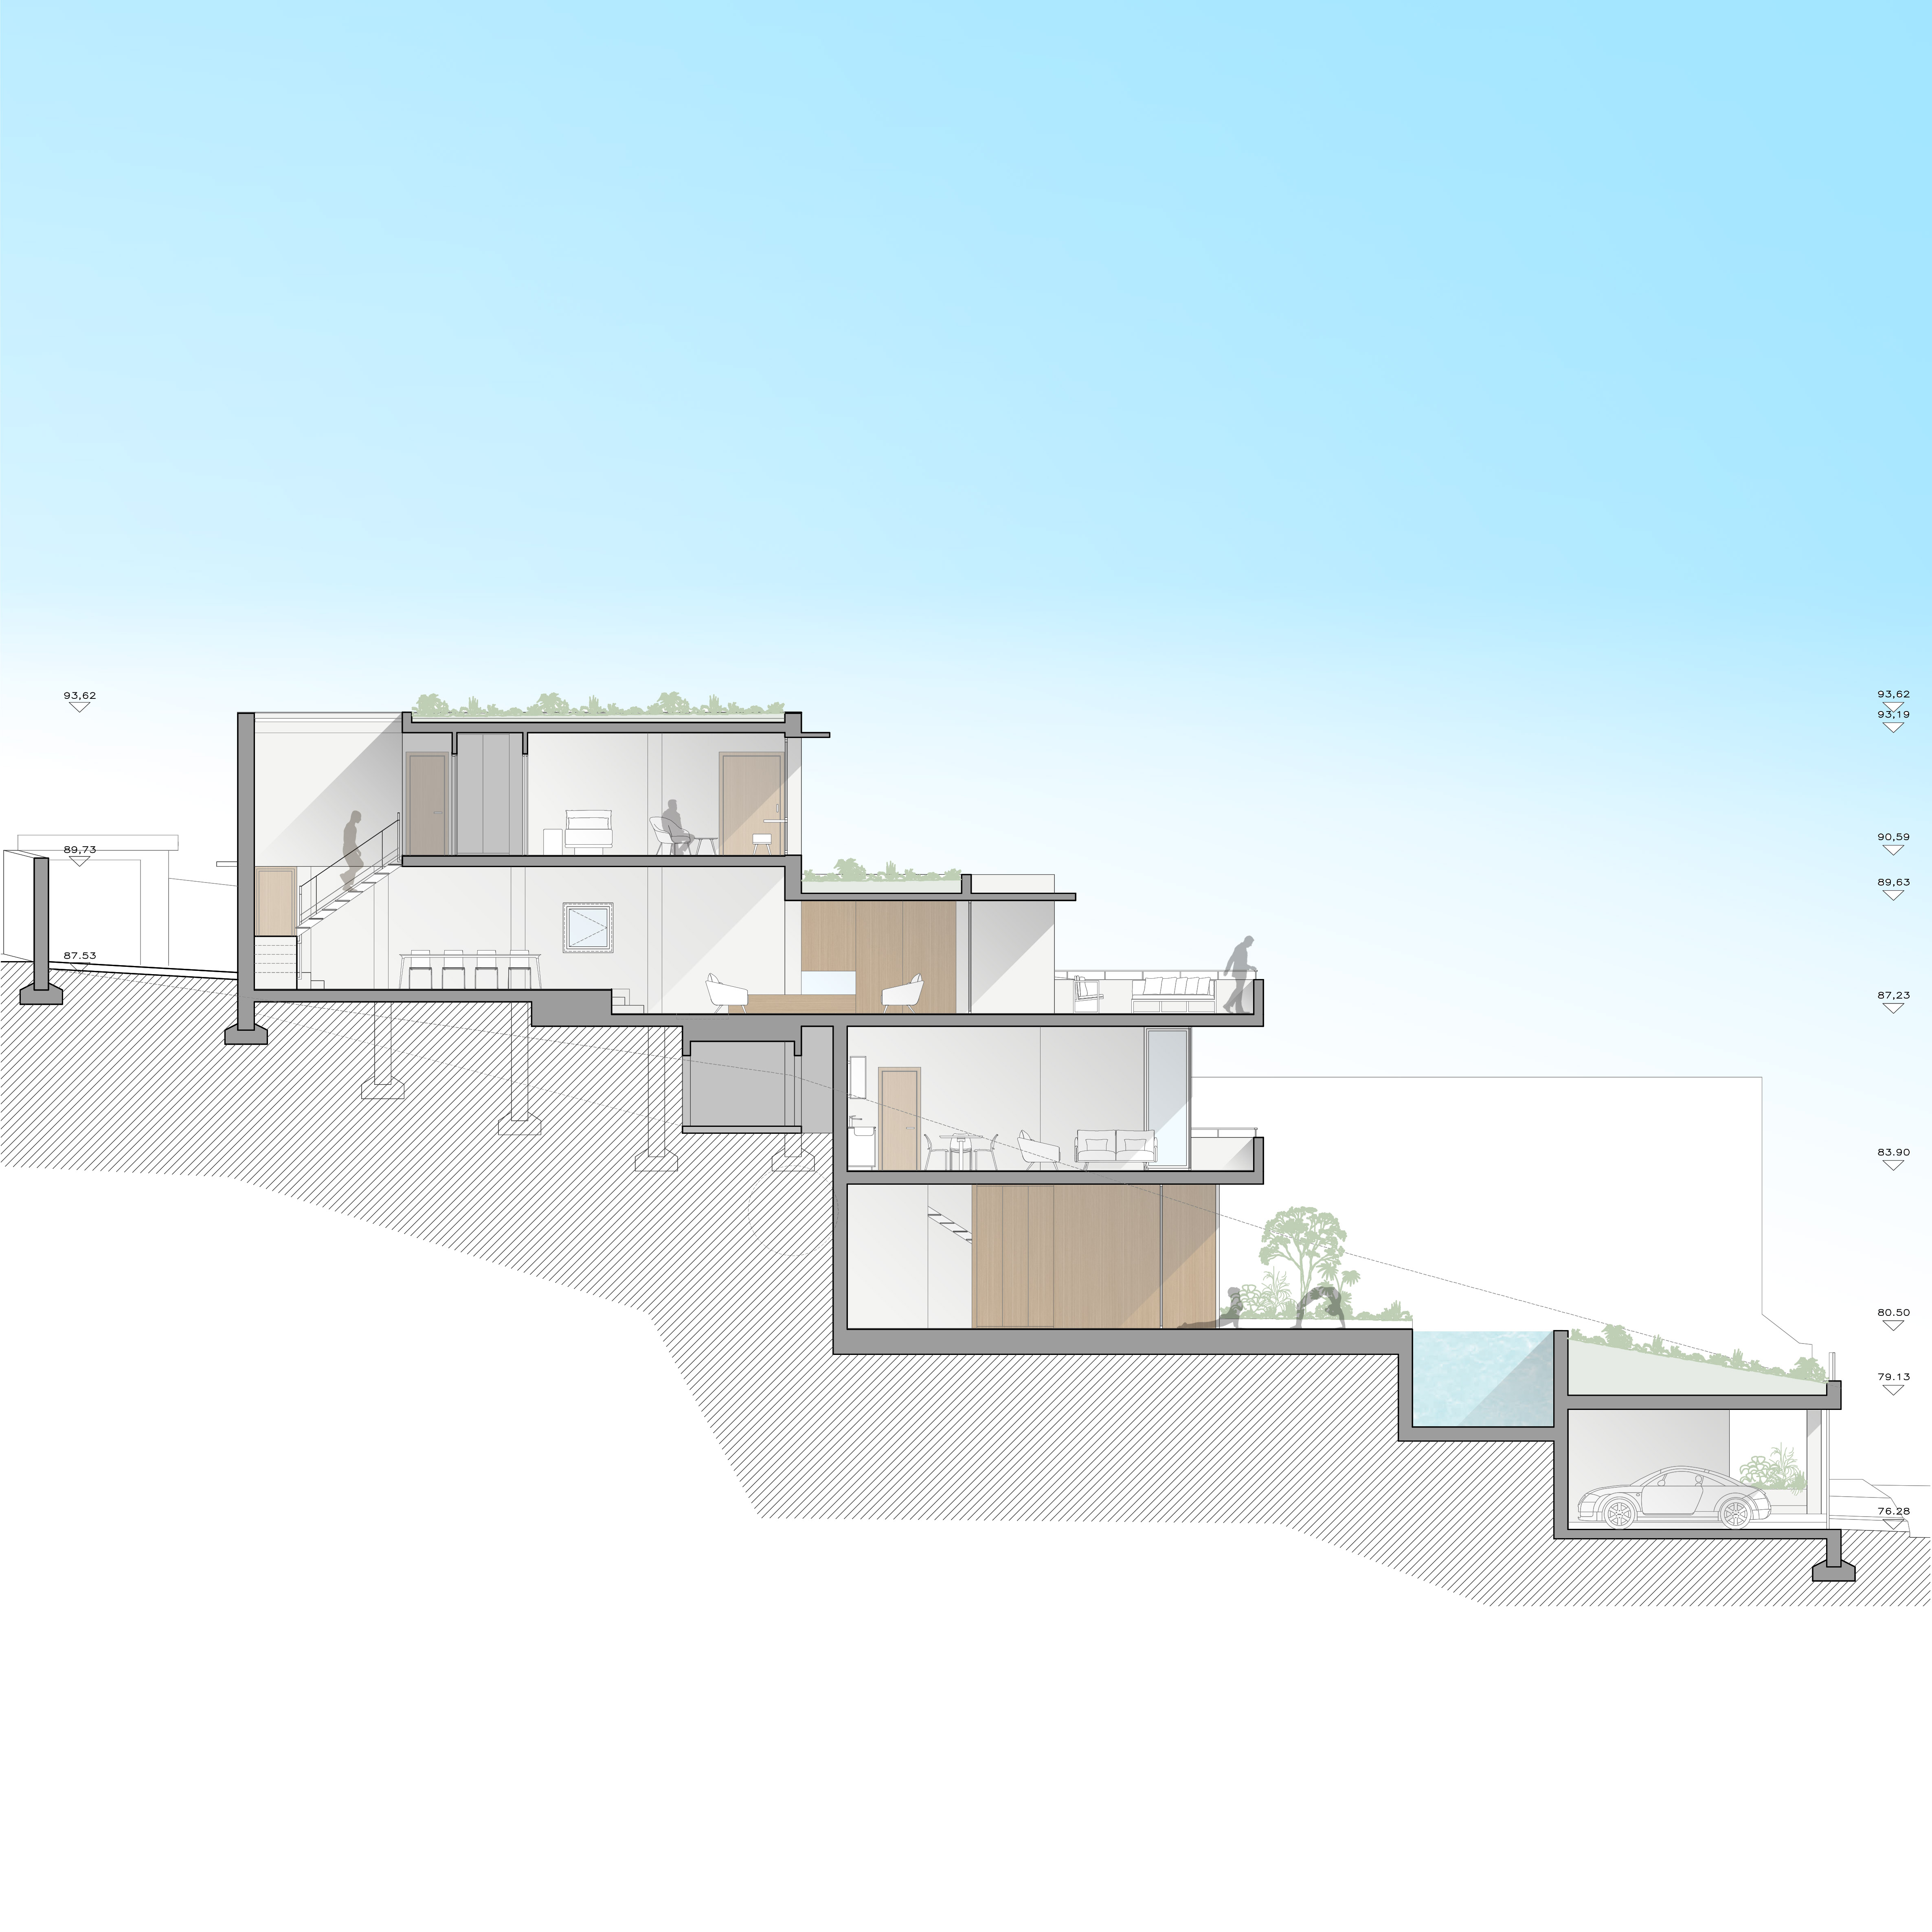 rardo architects in sitges and barcelona